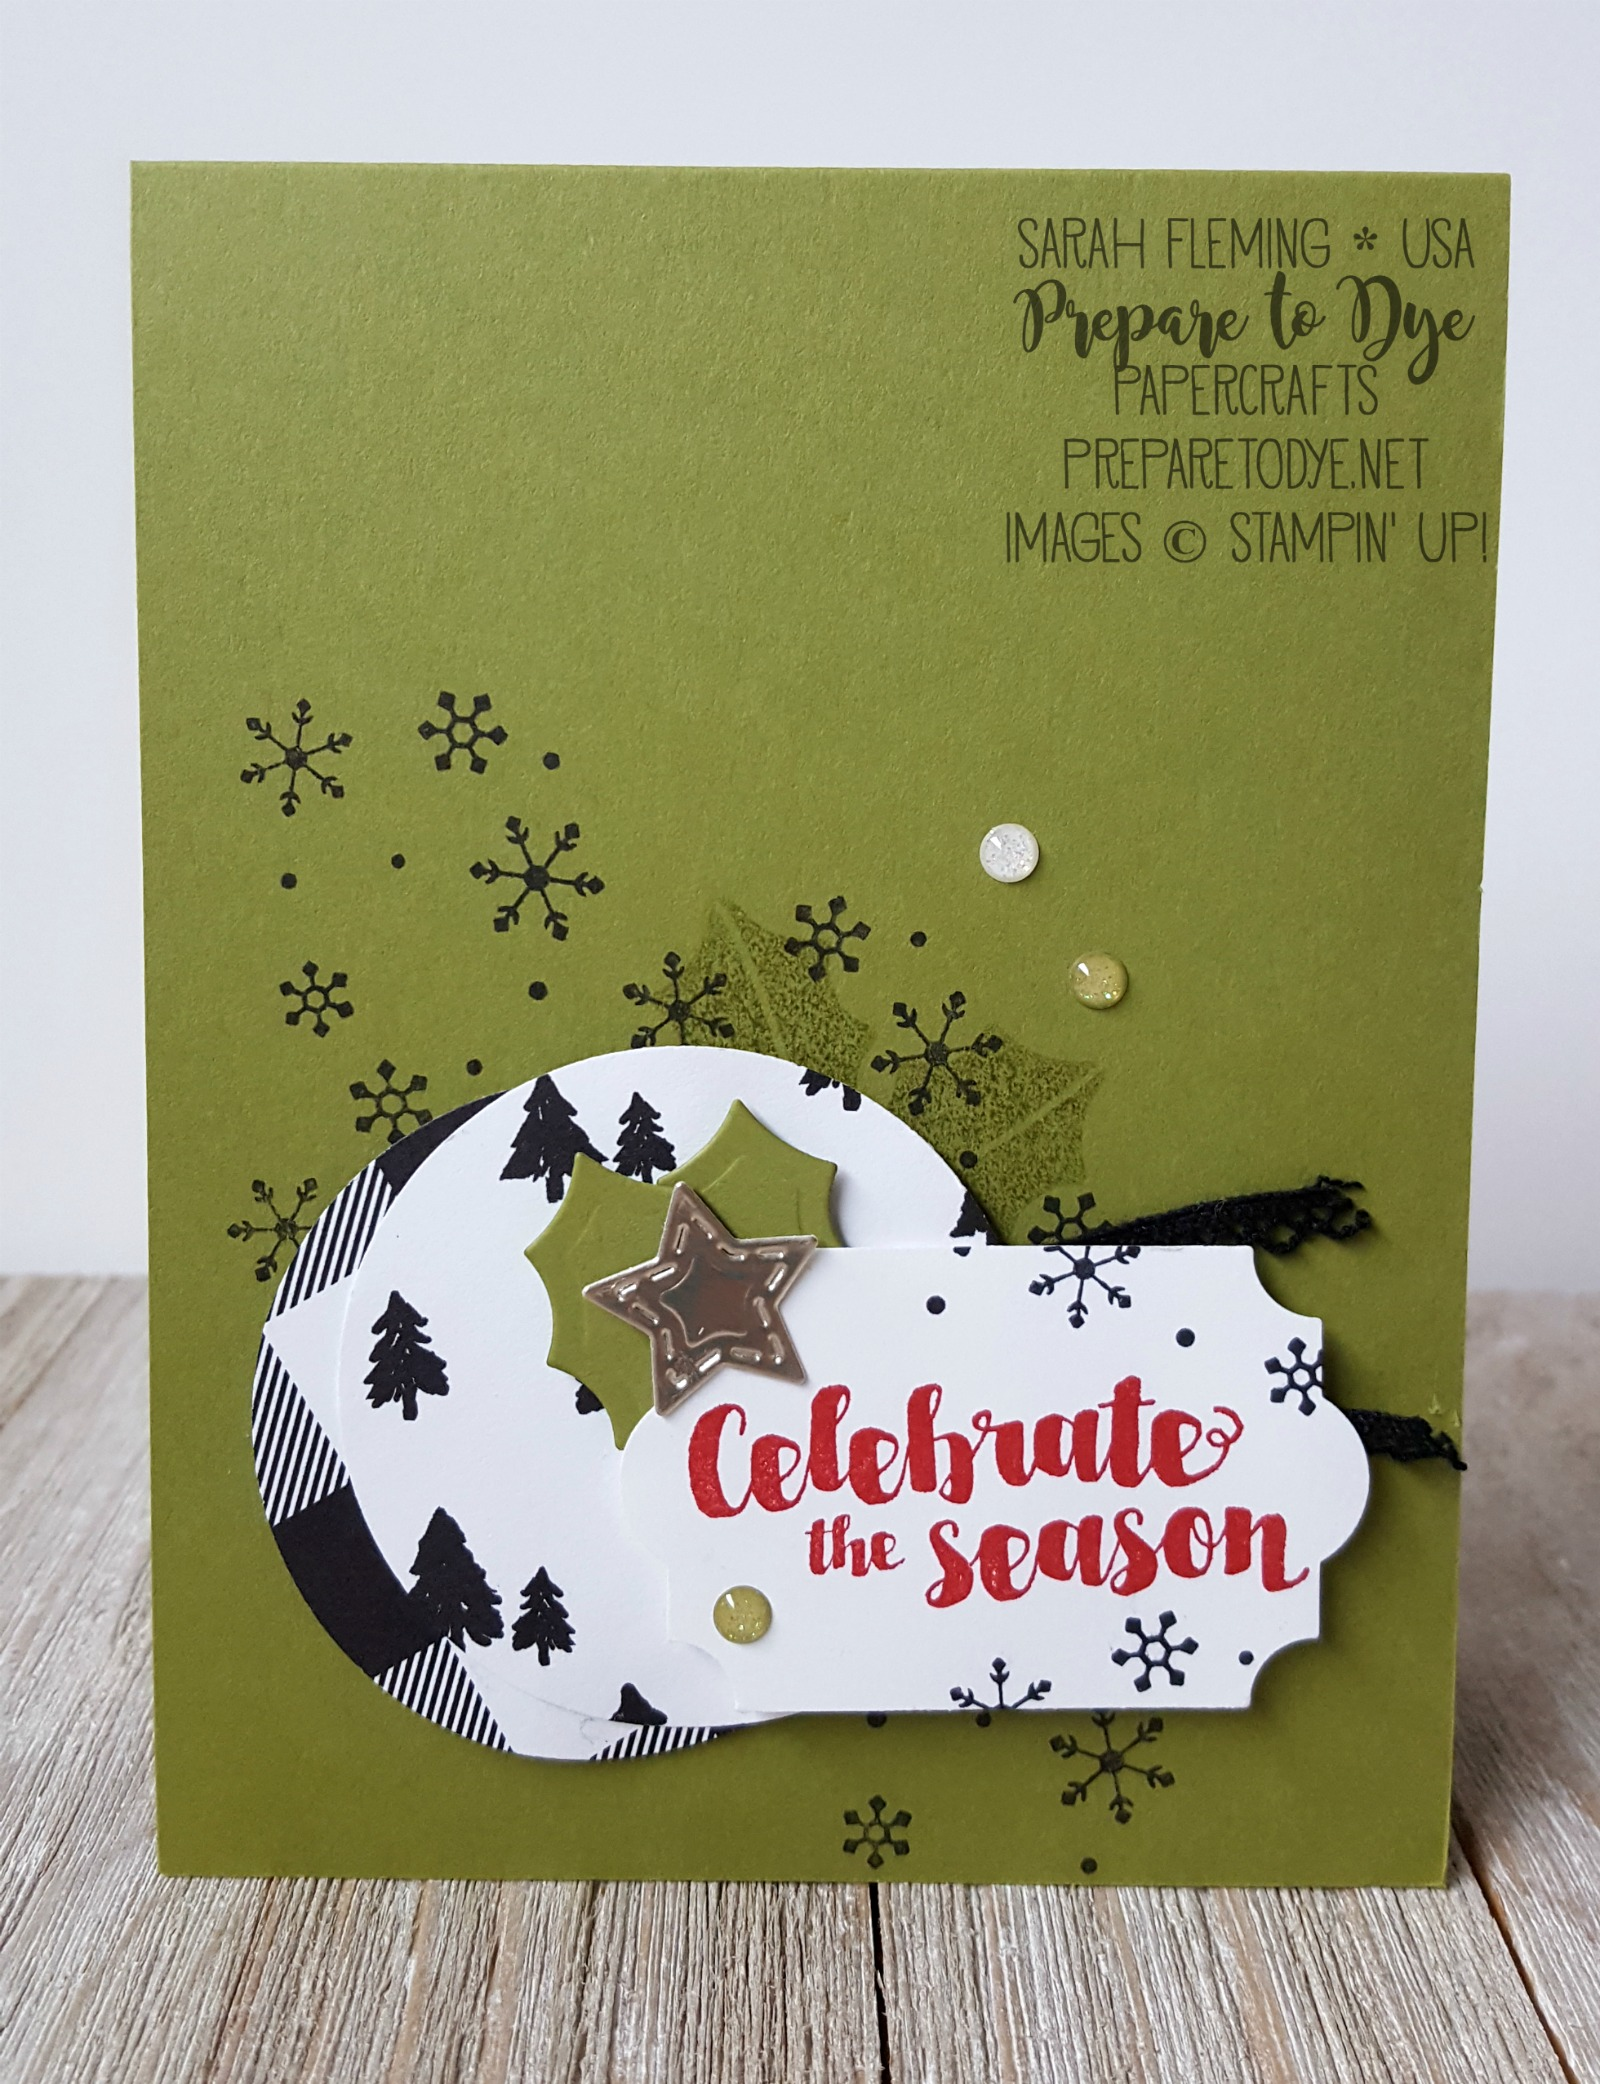 Stampin' Up! Tags & Trimmings bundle with Trim Your Stocking thinlits, Merry Little Christmas paper - Sarah Fleming - Prepare to Dye Papercrafts - stampinup #6monthstampingoals #aimforalaska